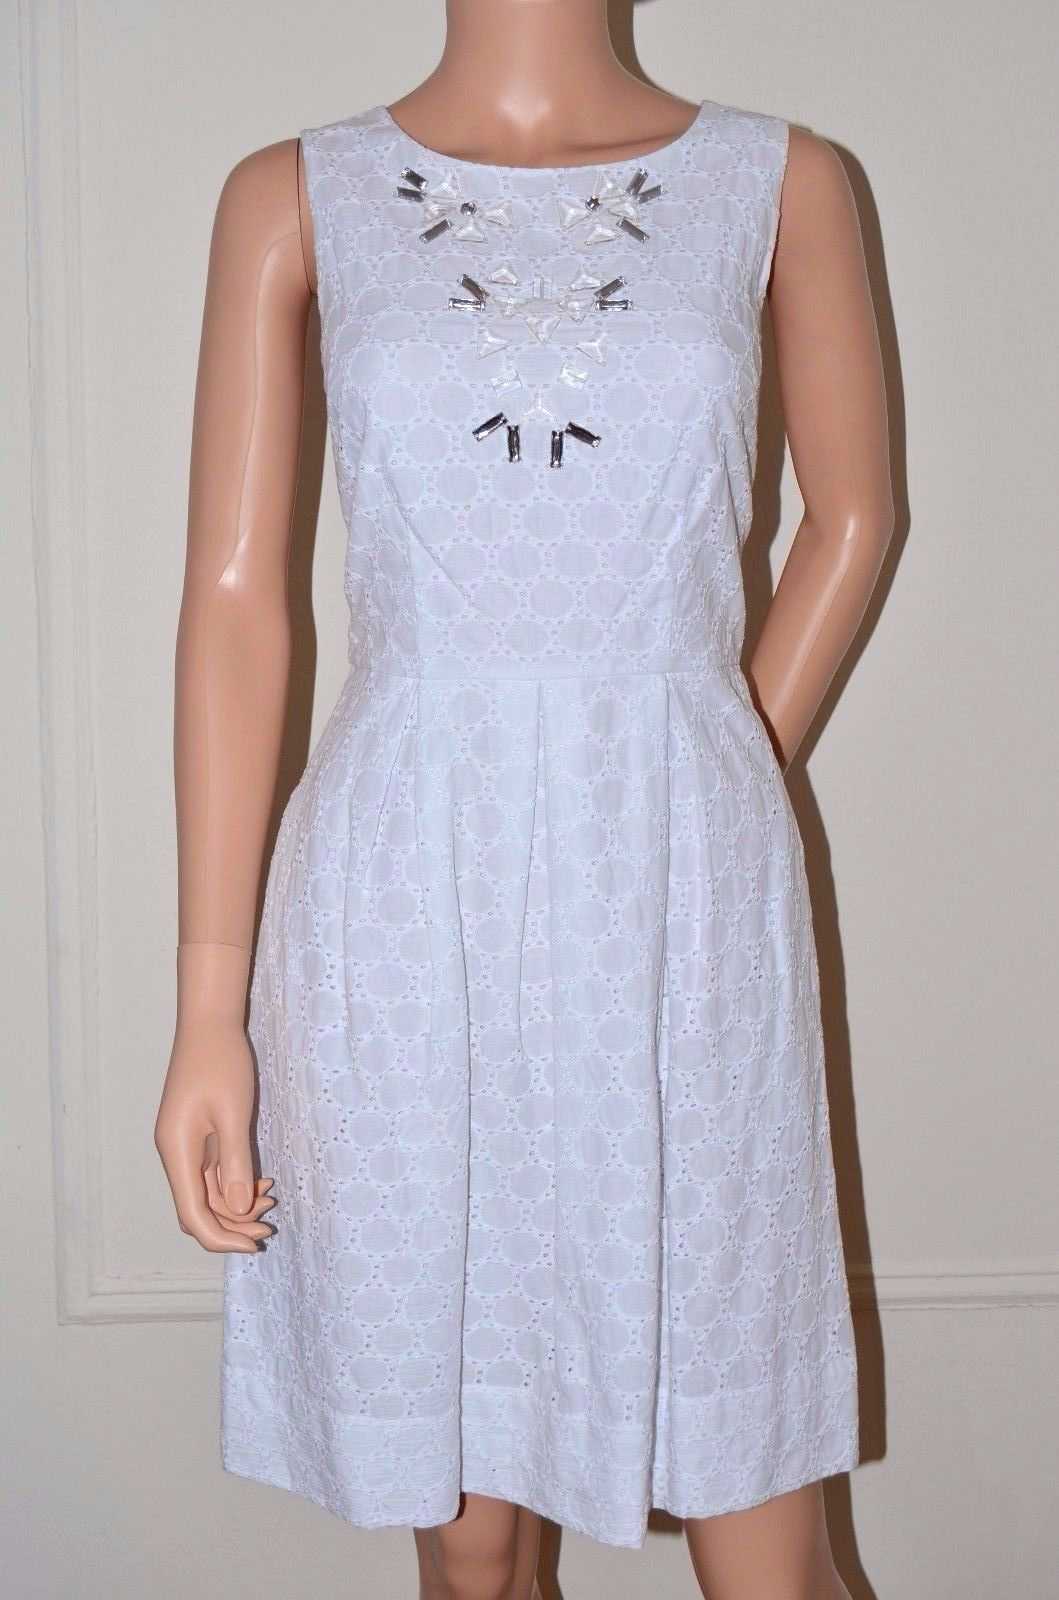 Miss Sixty M60 $128 Eyelet Embroidered Dress White size 6 Medium M NEW O